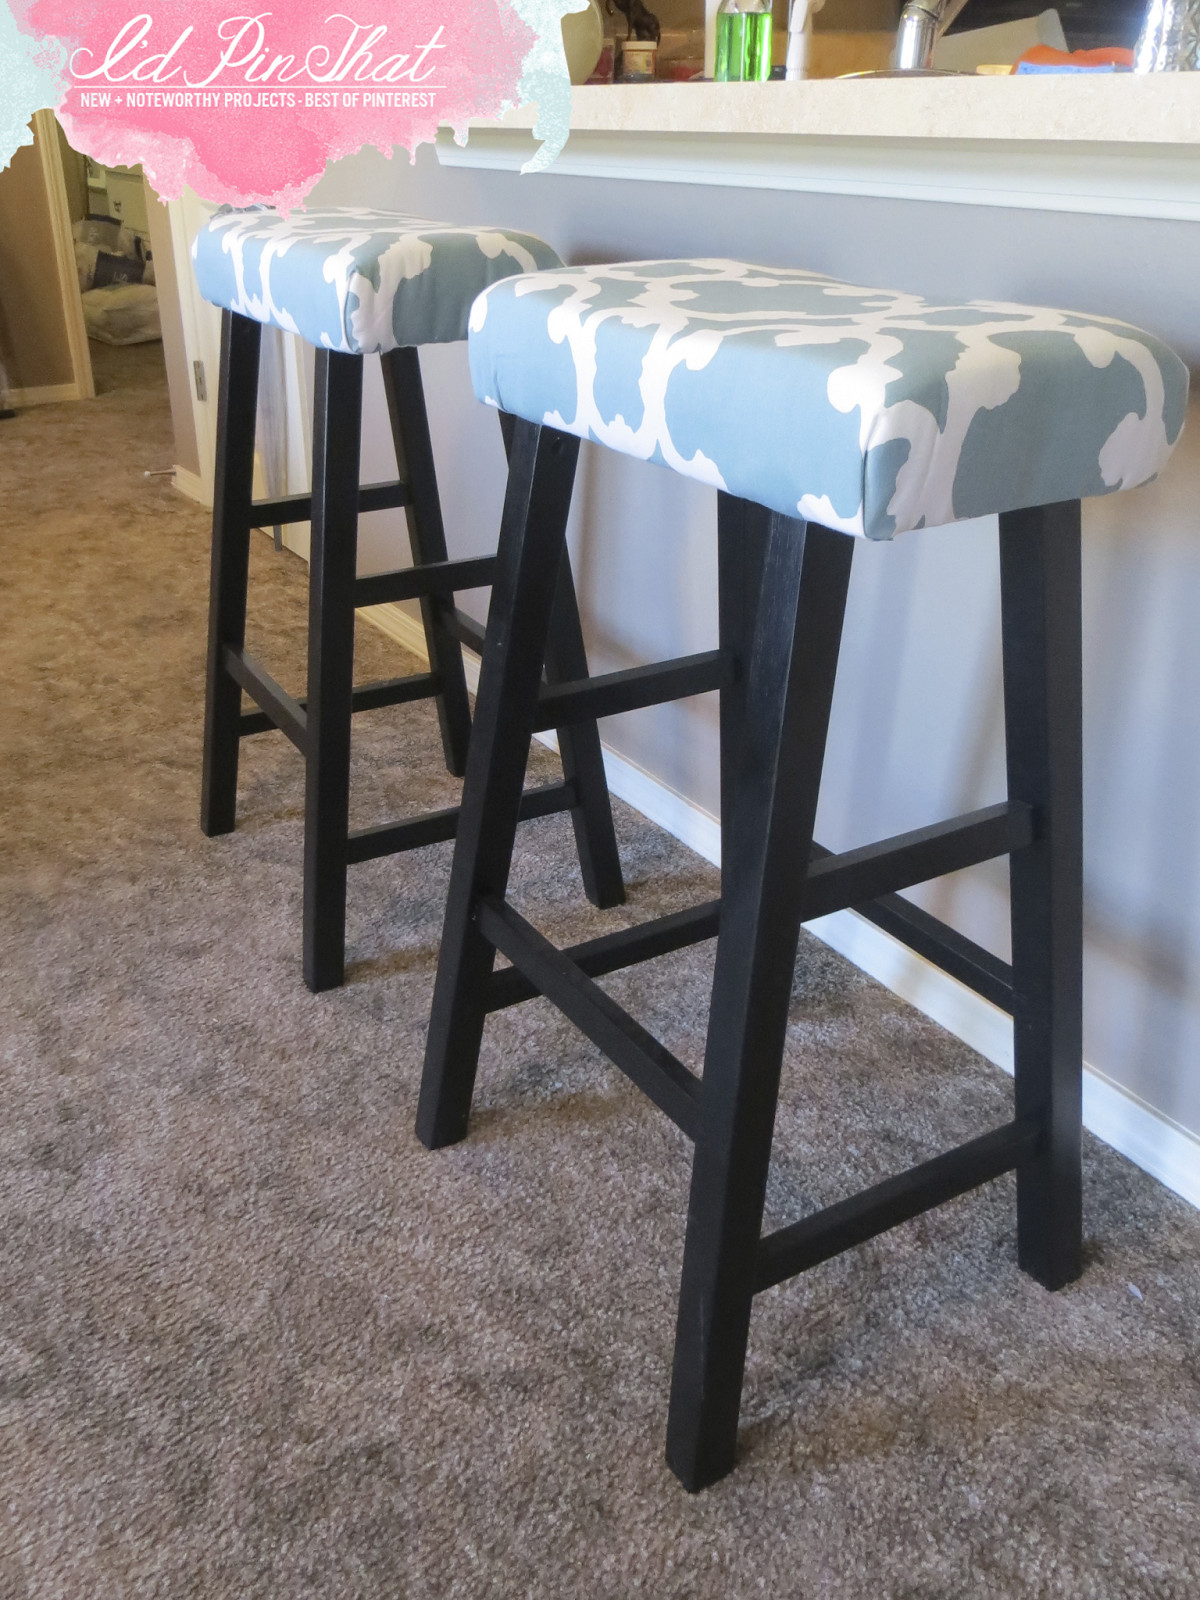 Best ideas about DIY Bar Stools . Save or Pin I d Pin That Bar Stool Face Lift Now.